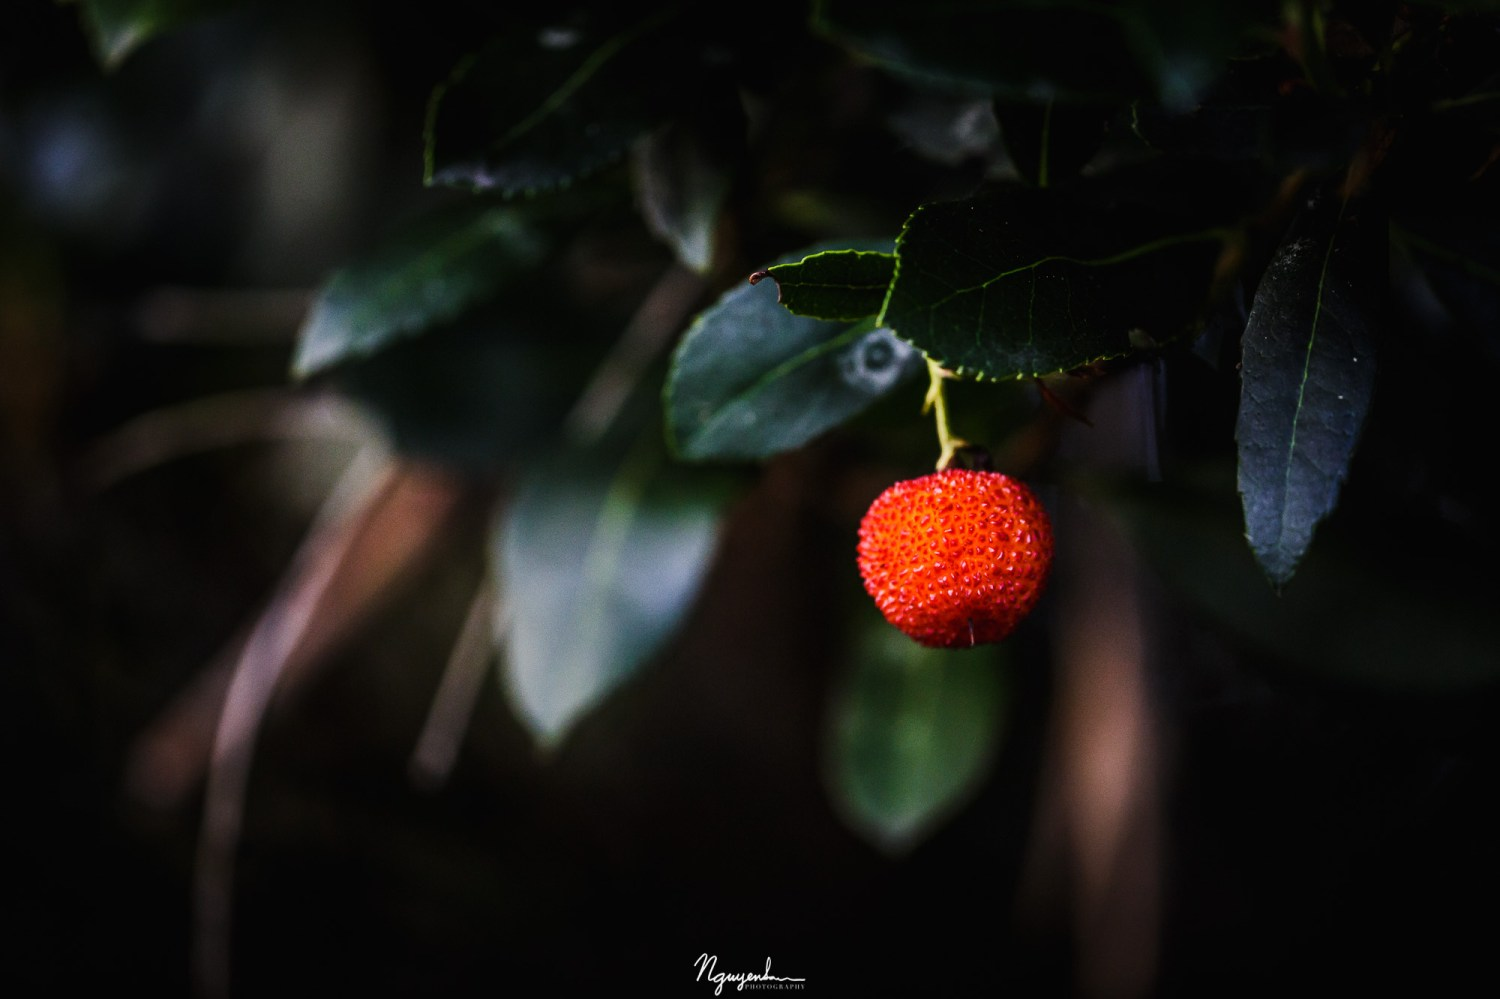 fruit of a strawberry tree